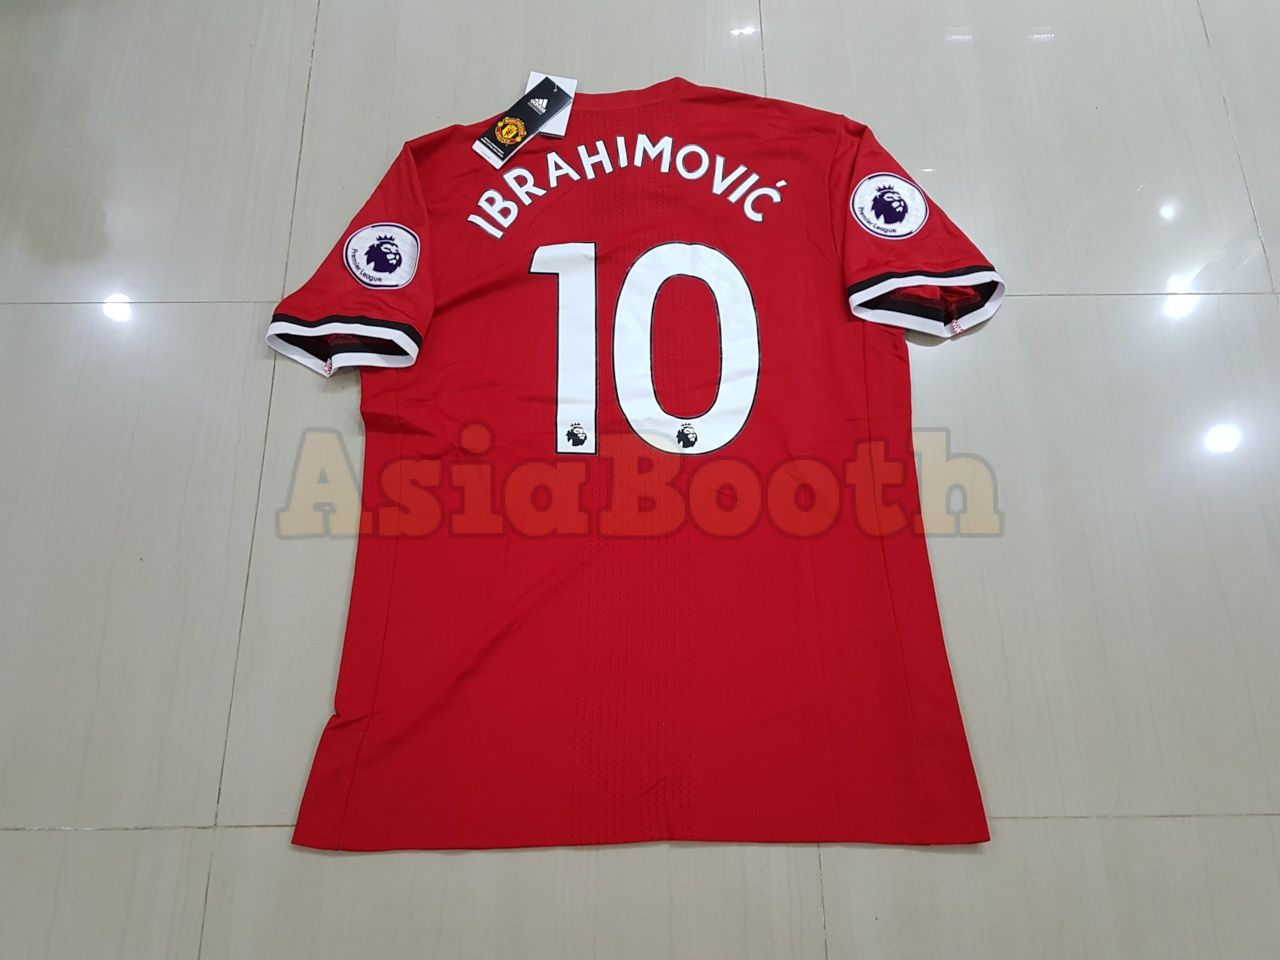 pretty nice 2725b 05f76 2017-2018 Manchester United Home Jersey Shirt Climacool For Men  (Ibrahimovic #10)